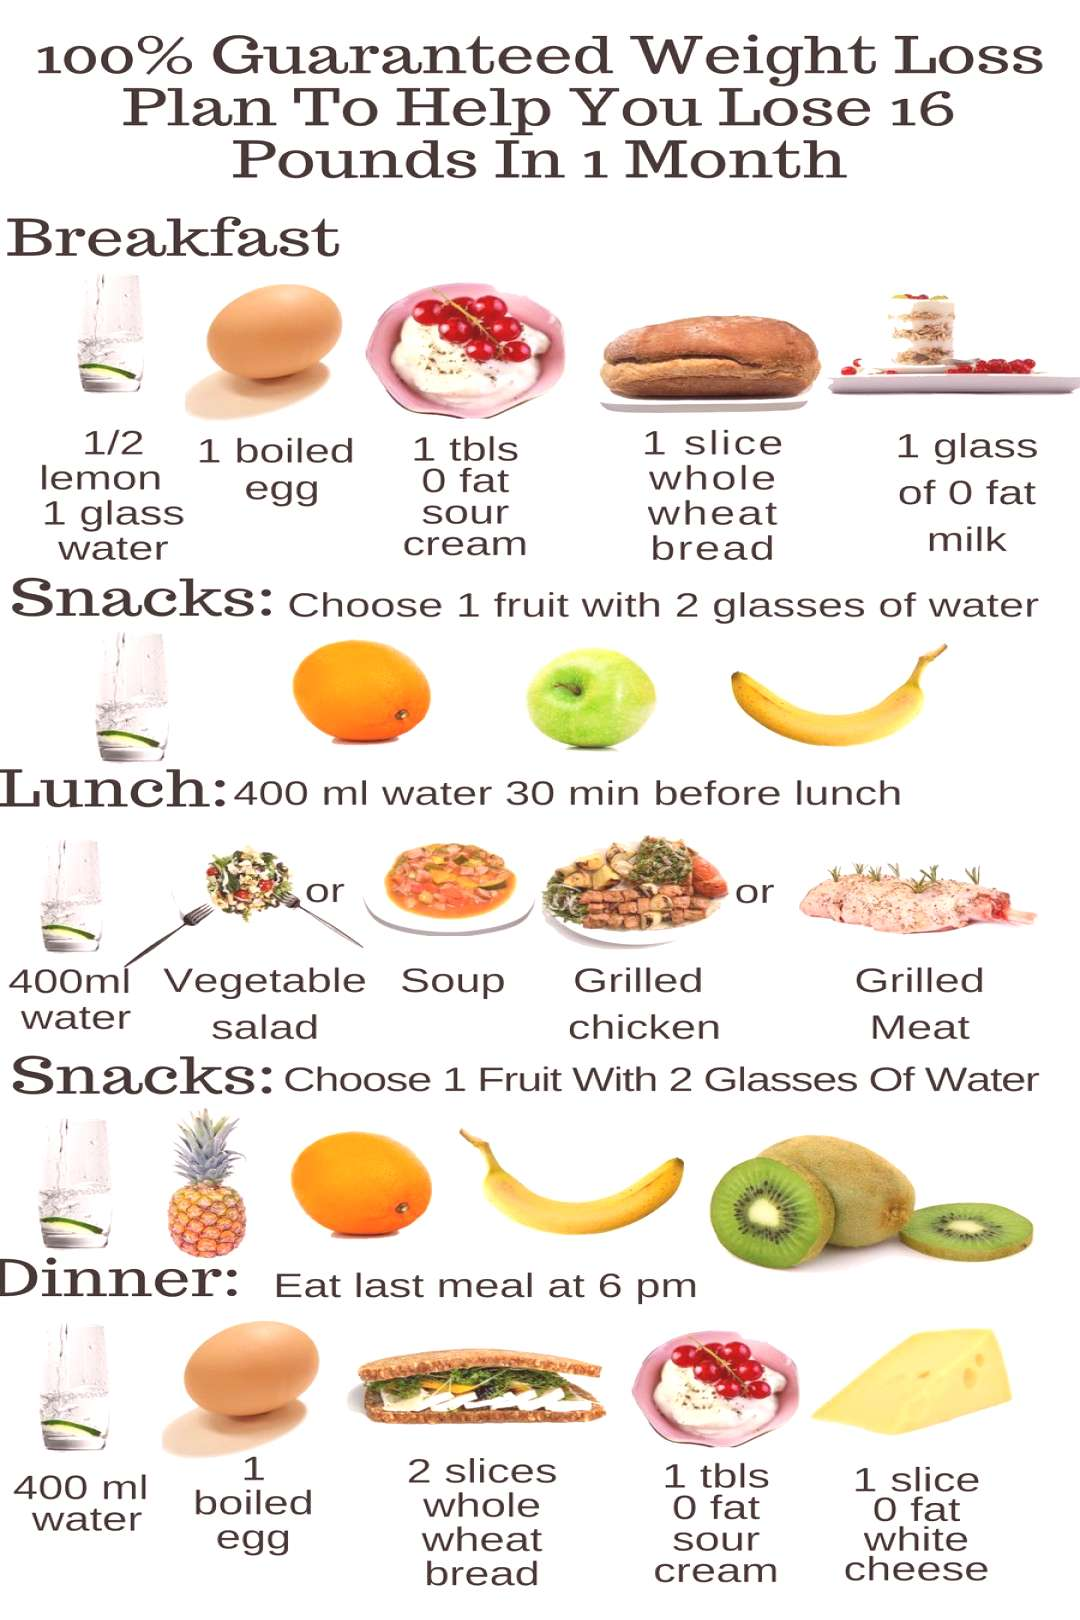 How To Lose Weight Fast - A Proven 3 Week Diet,Baking Healthy Healthy at restaurants Healthy benefi